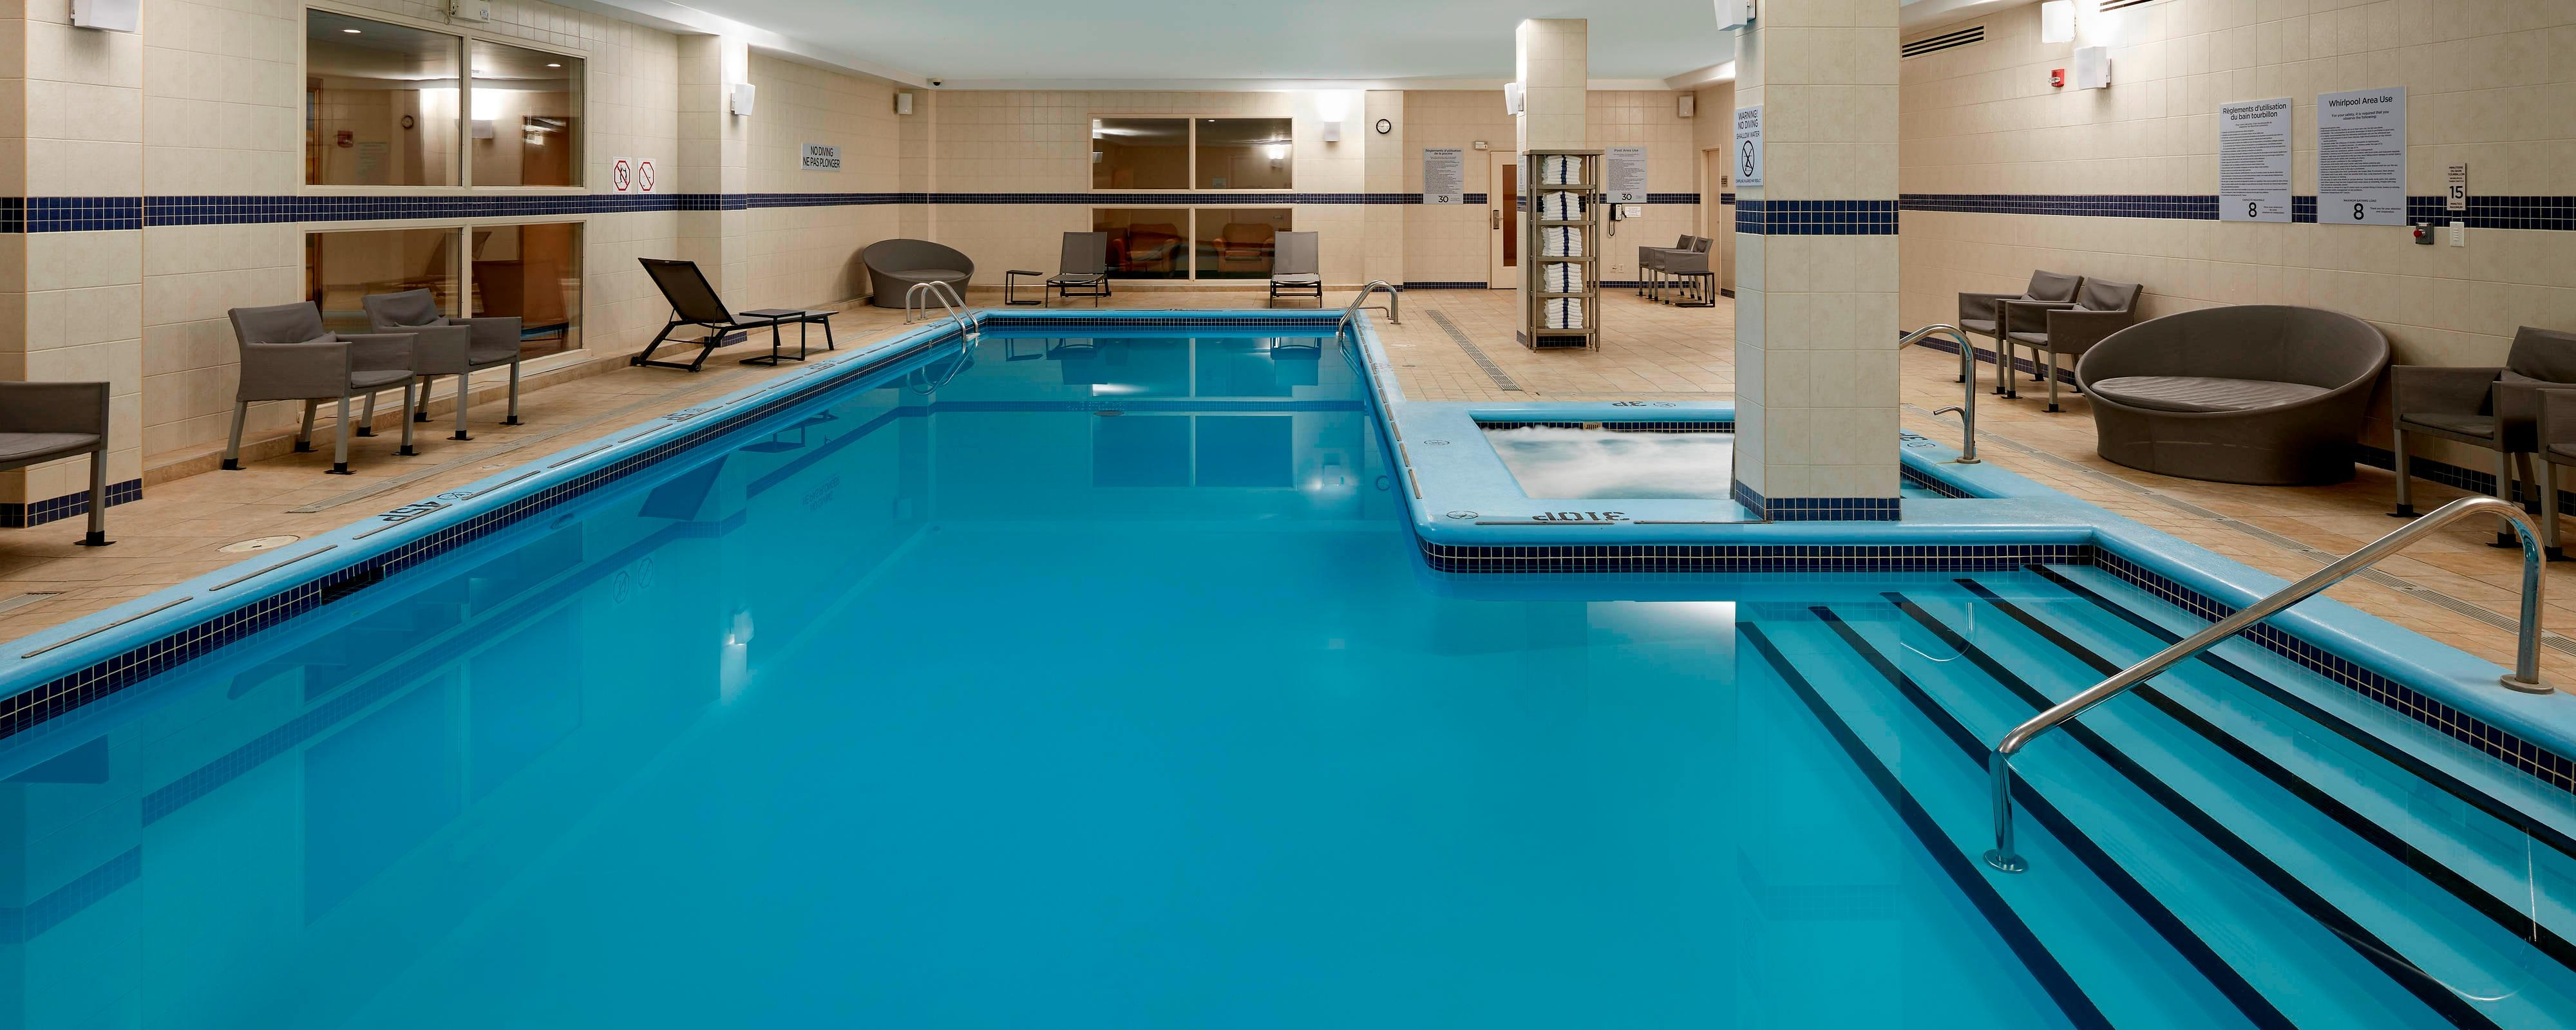 Montreal Airport Hotel With Indoor Pool Courtyard Montreal Airport